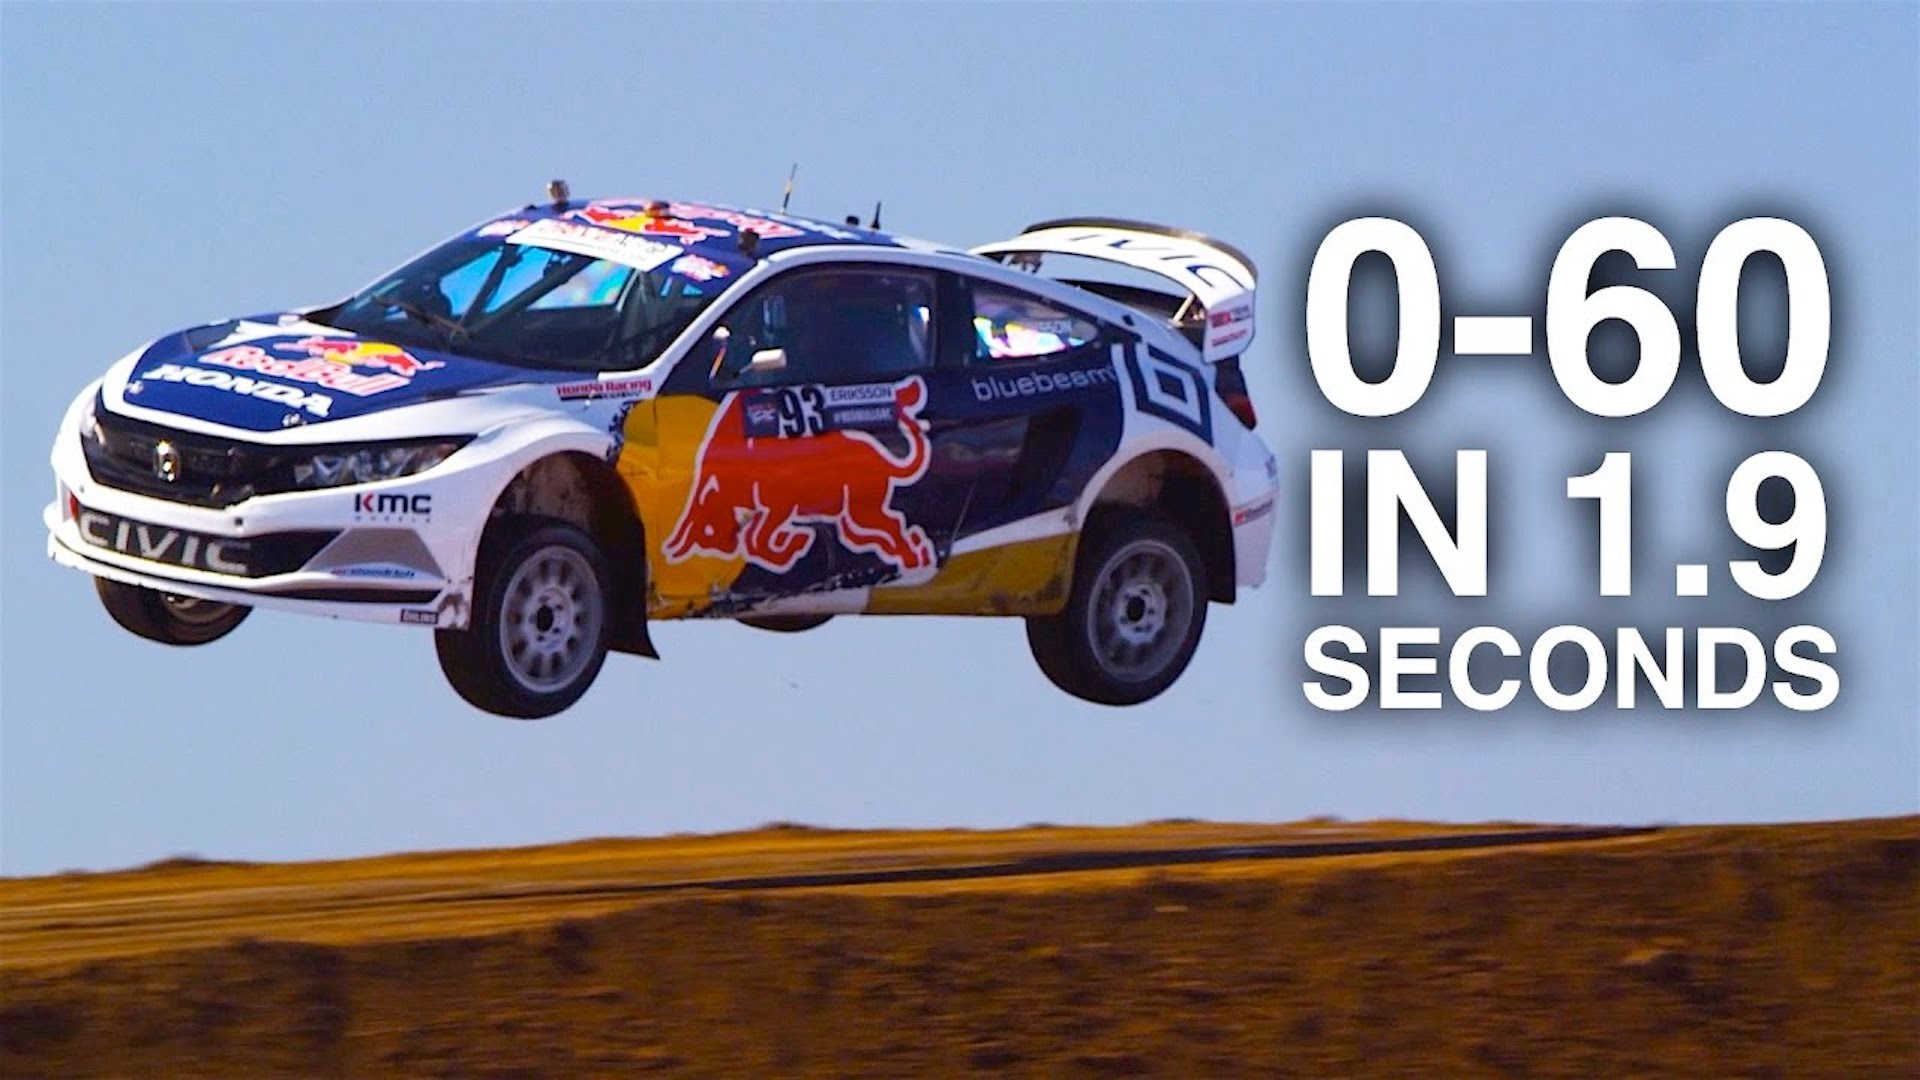 How Global Rallycross Cars Hit 60 Mph In 1 9 Seconds